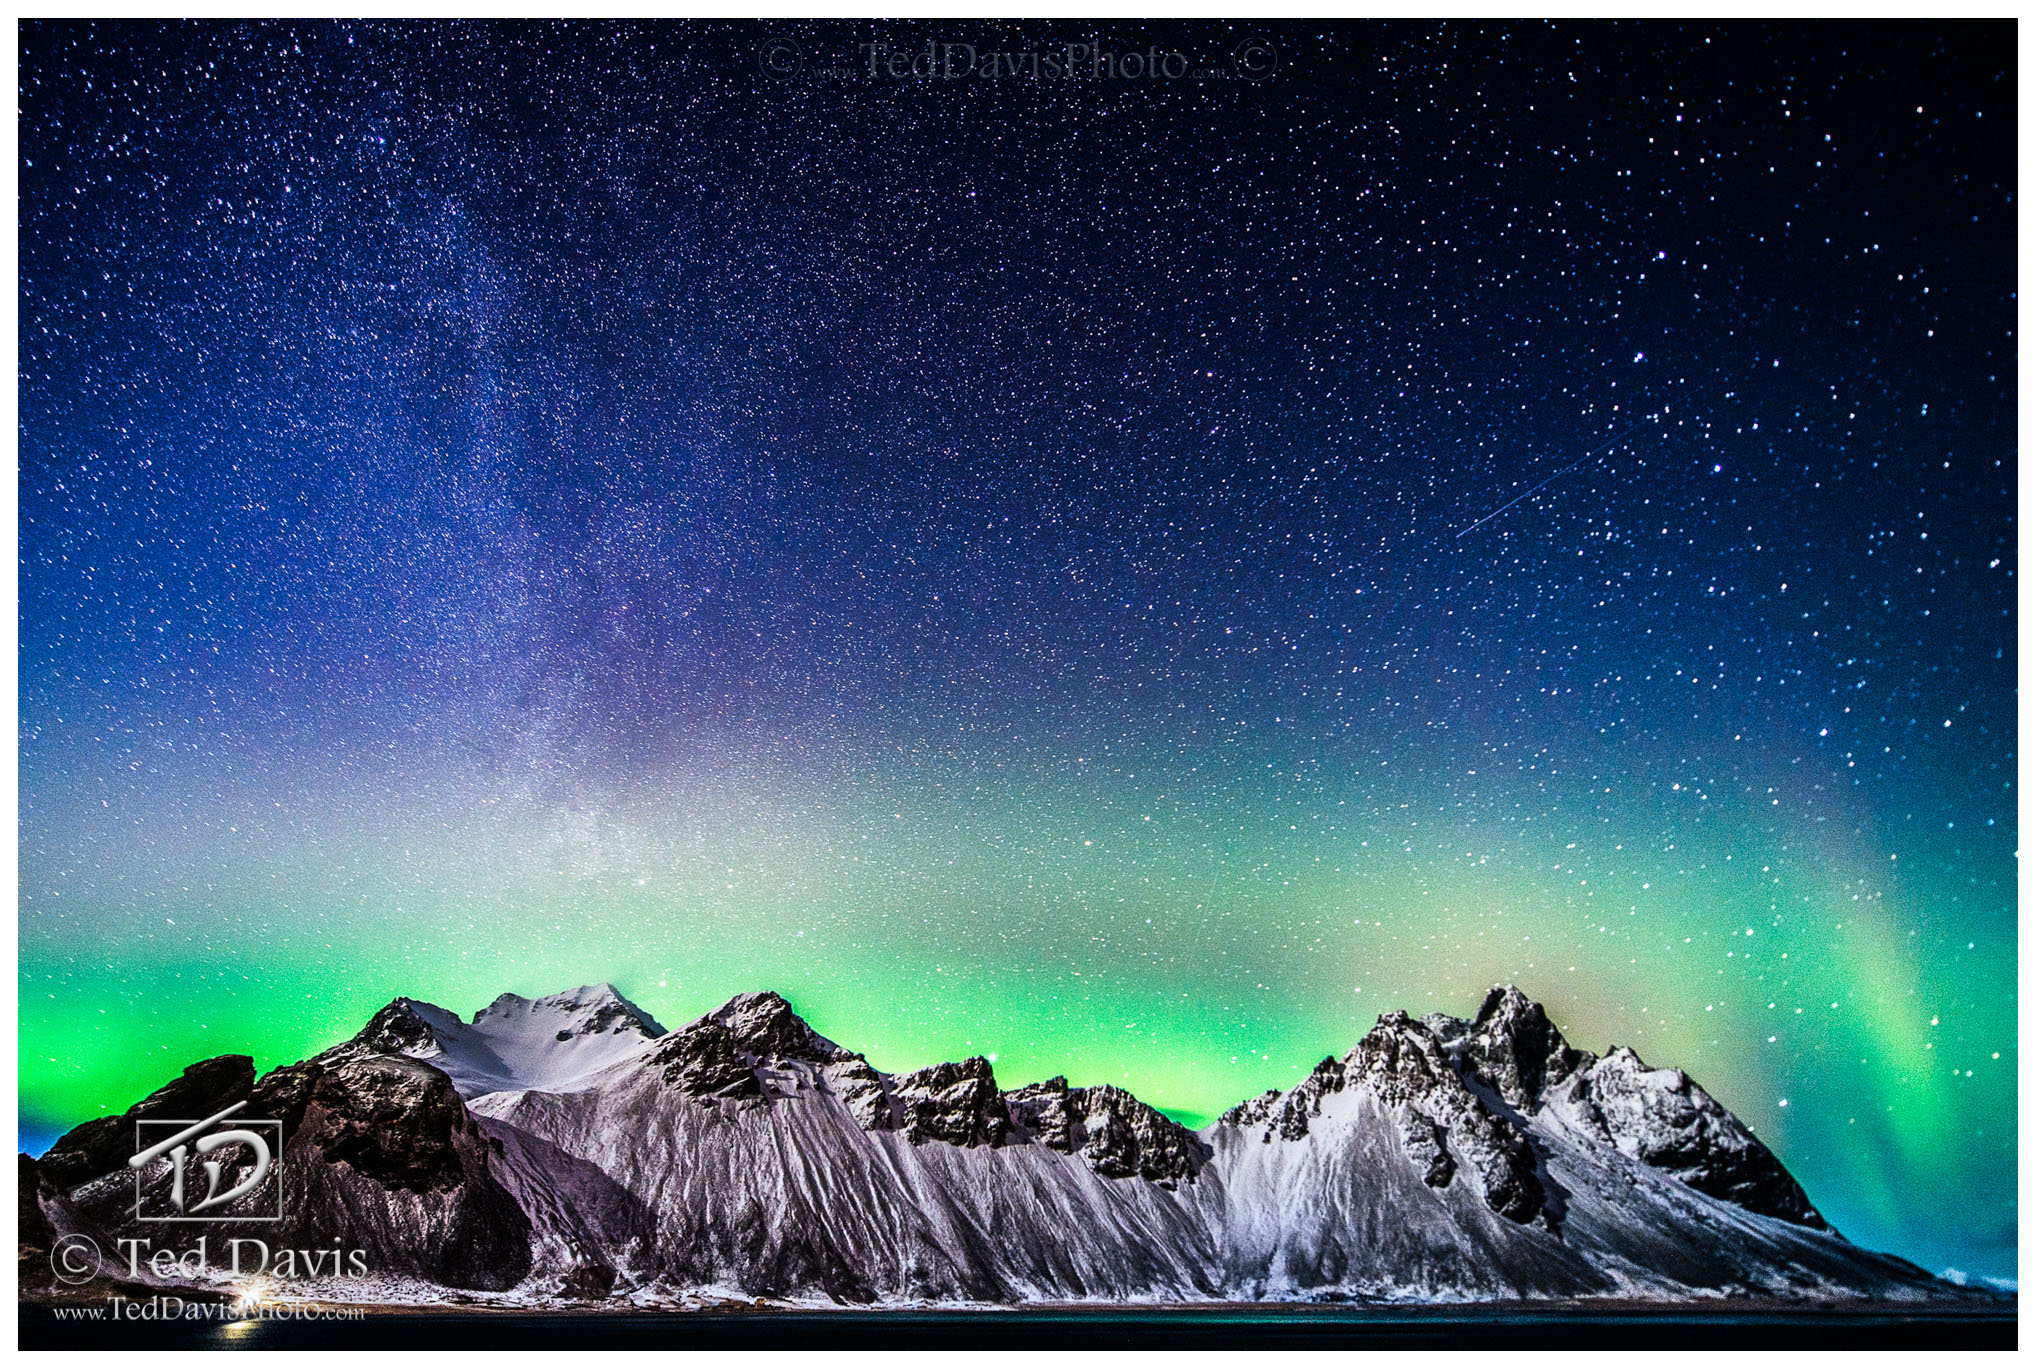 Iceland, Vesturhorn, northern lights, aurora, mountain, tidal, glow, milky way, photo